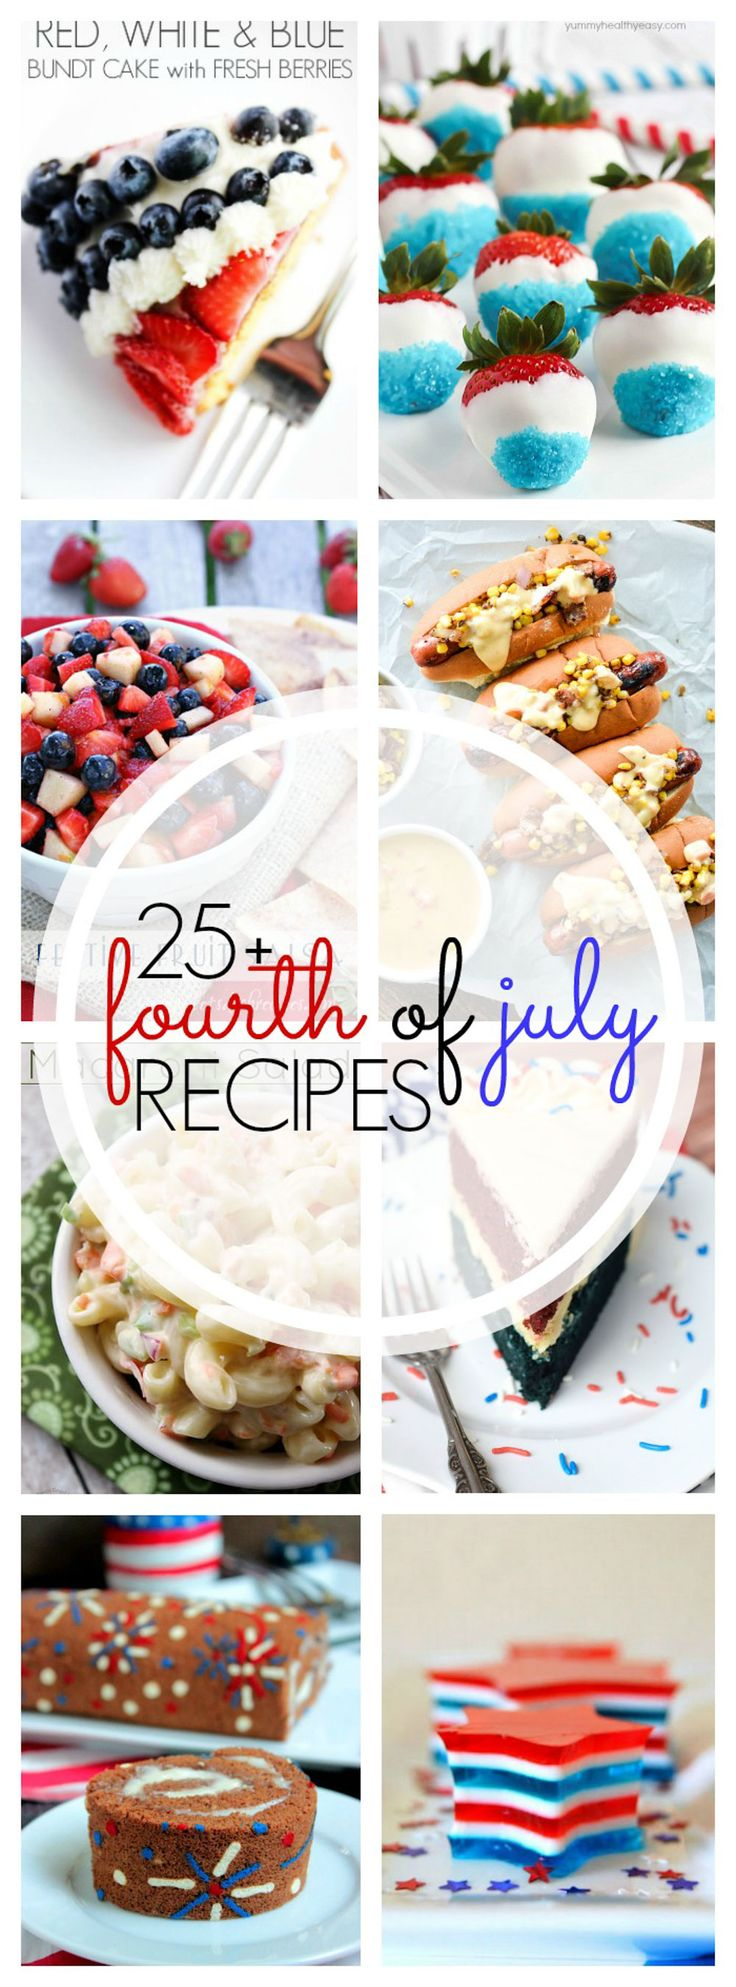 From fruit salad to pie and hot dogs to pasta salad, here are 25+ Fourth of July recipes!